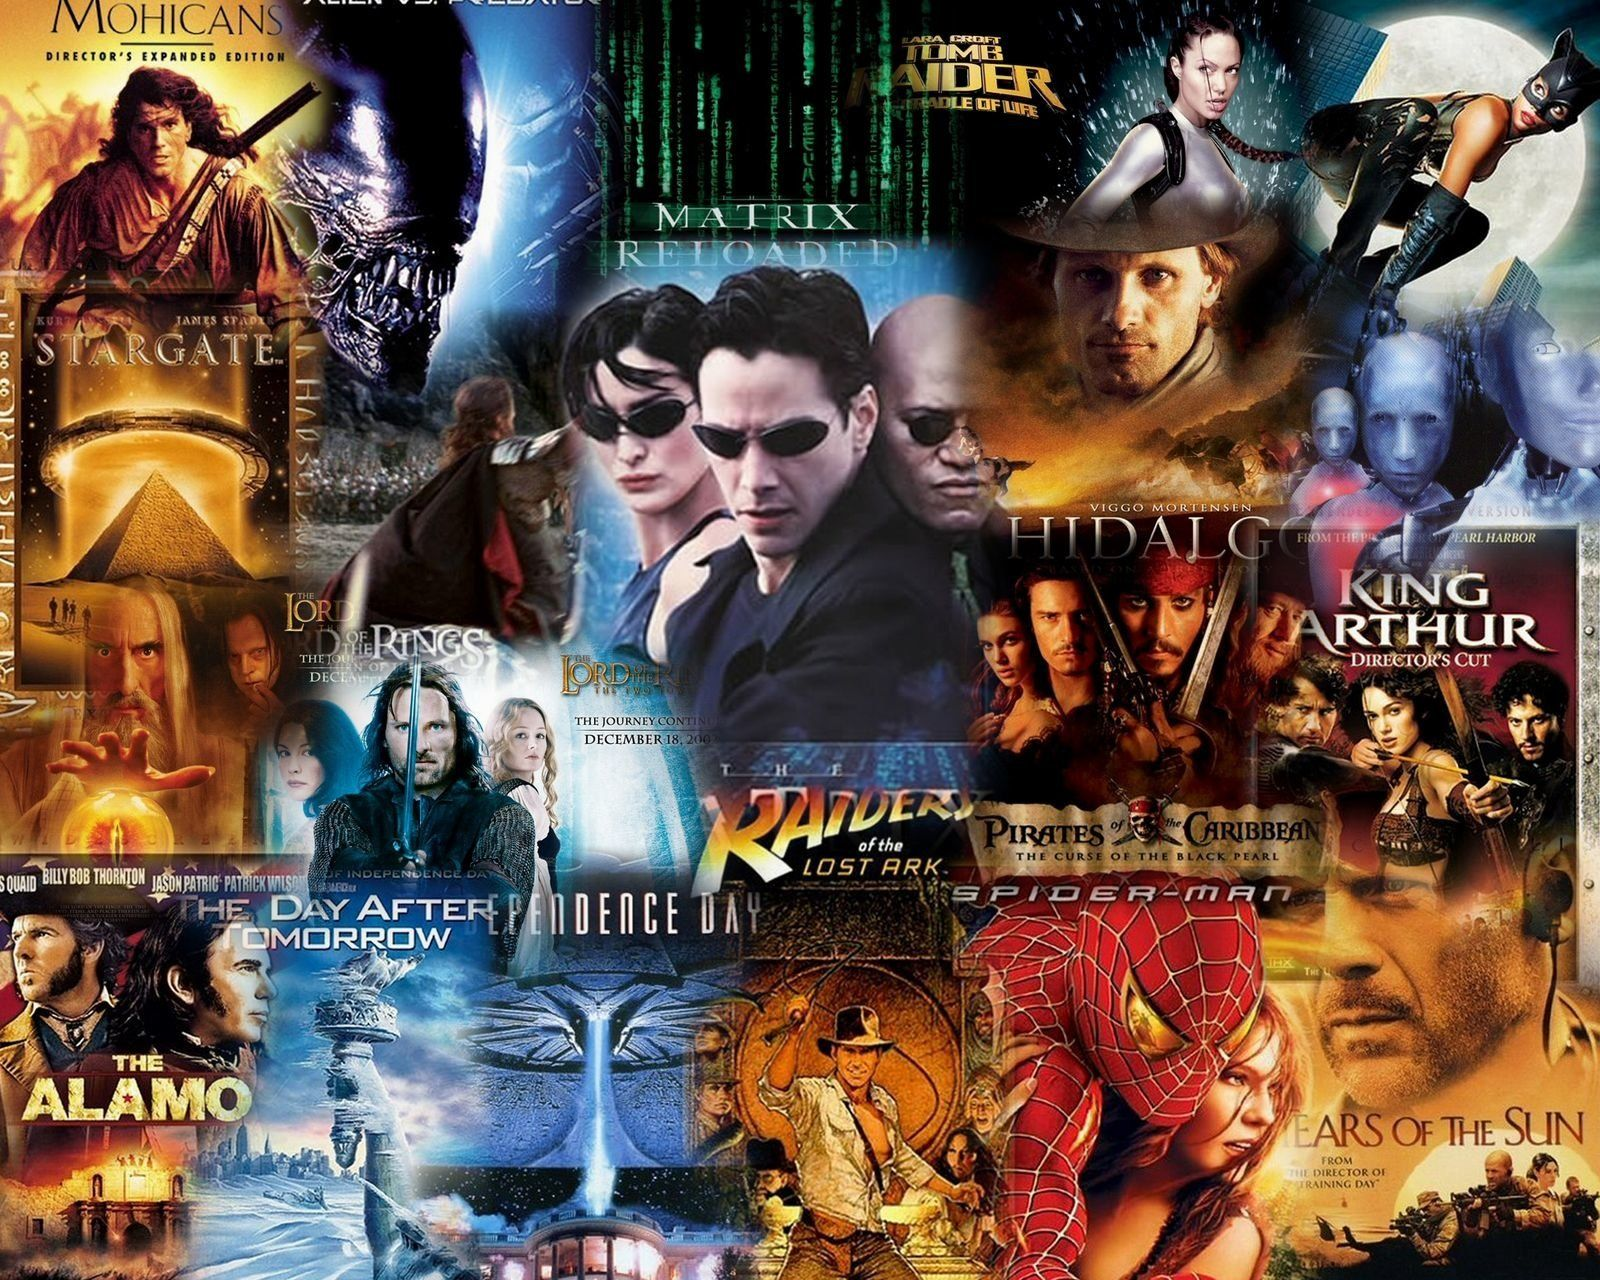 Great Wallpaper Movie Collage - af210fbb1e24644723dbe71312595034  Collection_4866.jpg